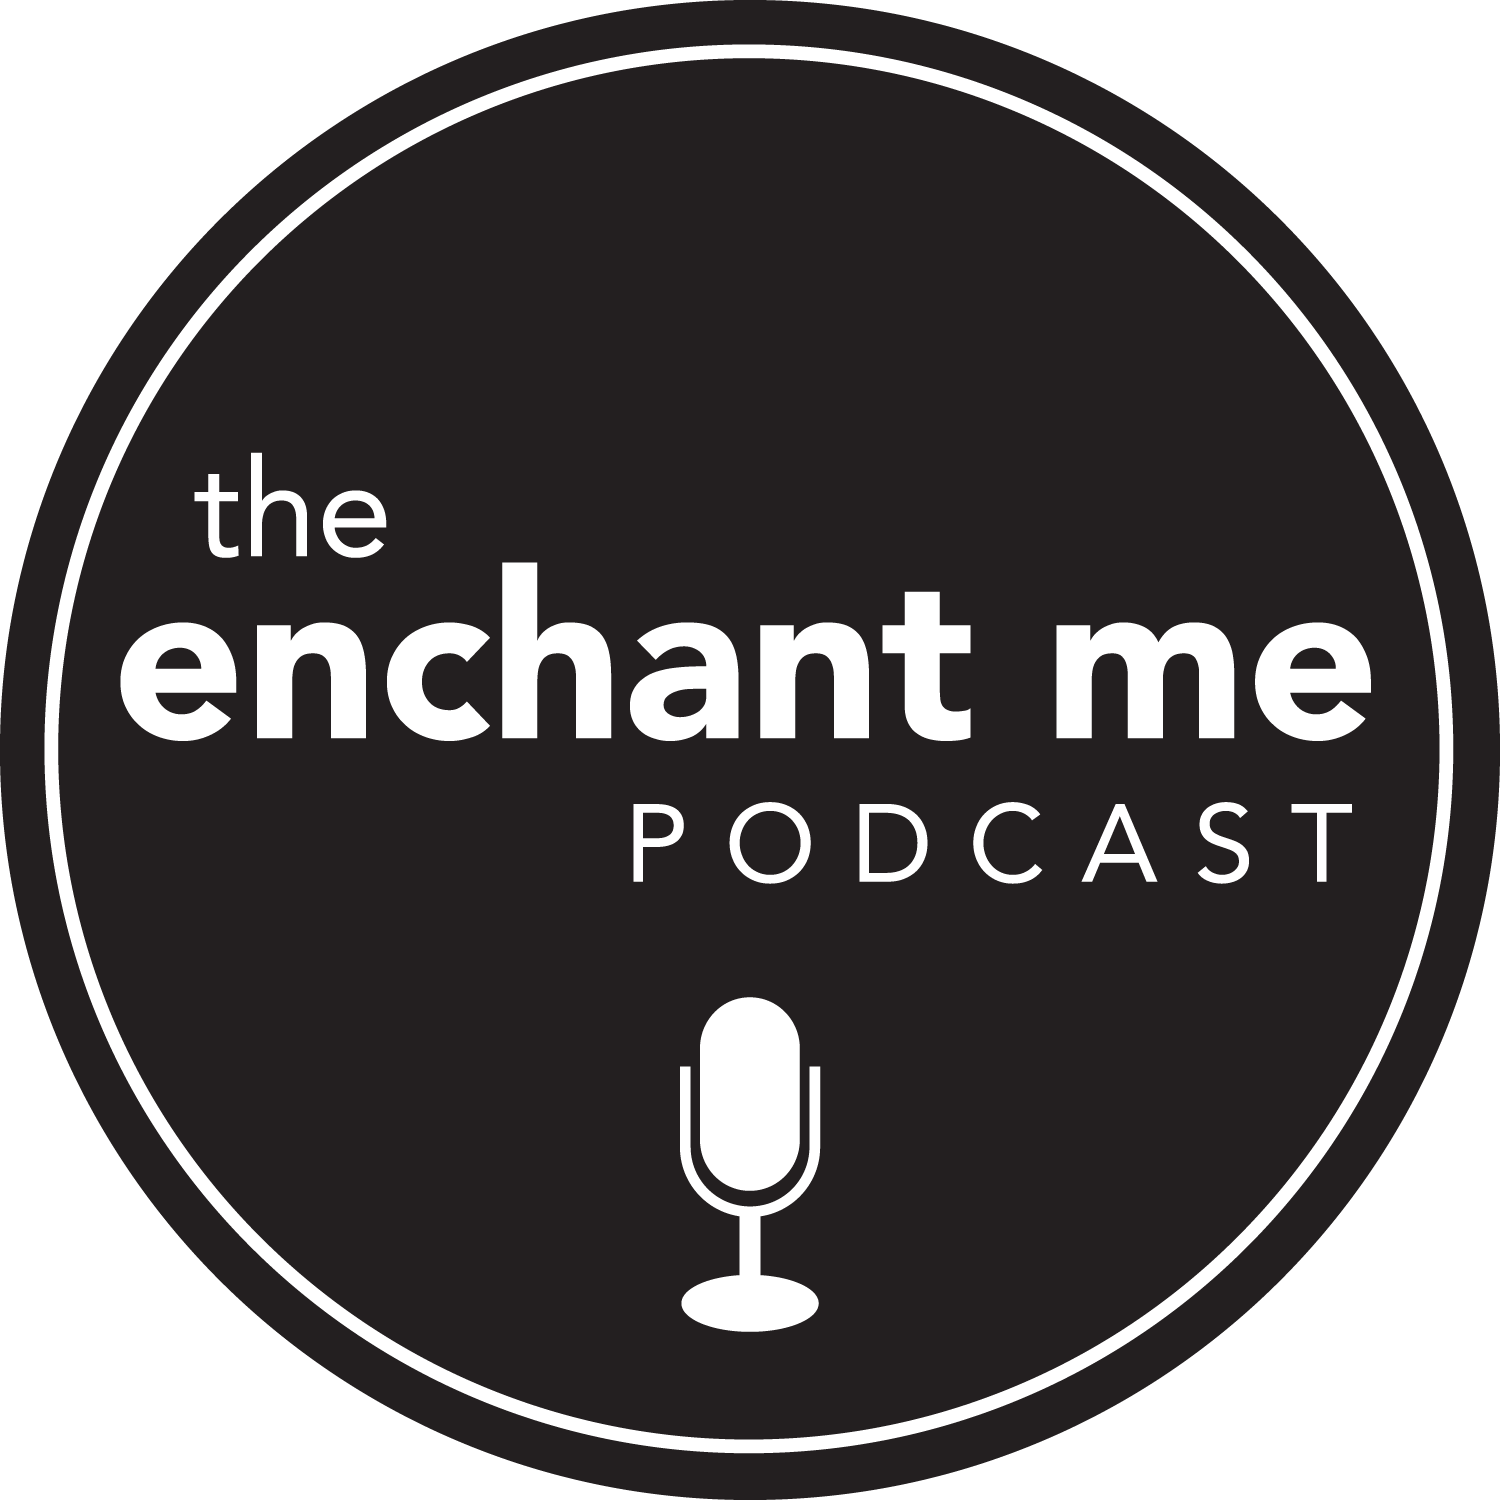 The Enchant Me Podcast